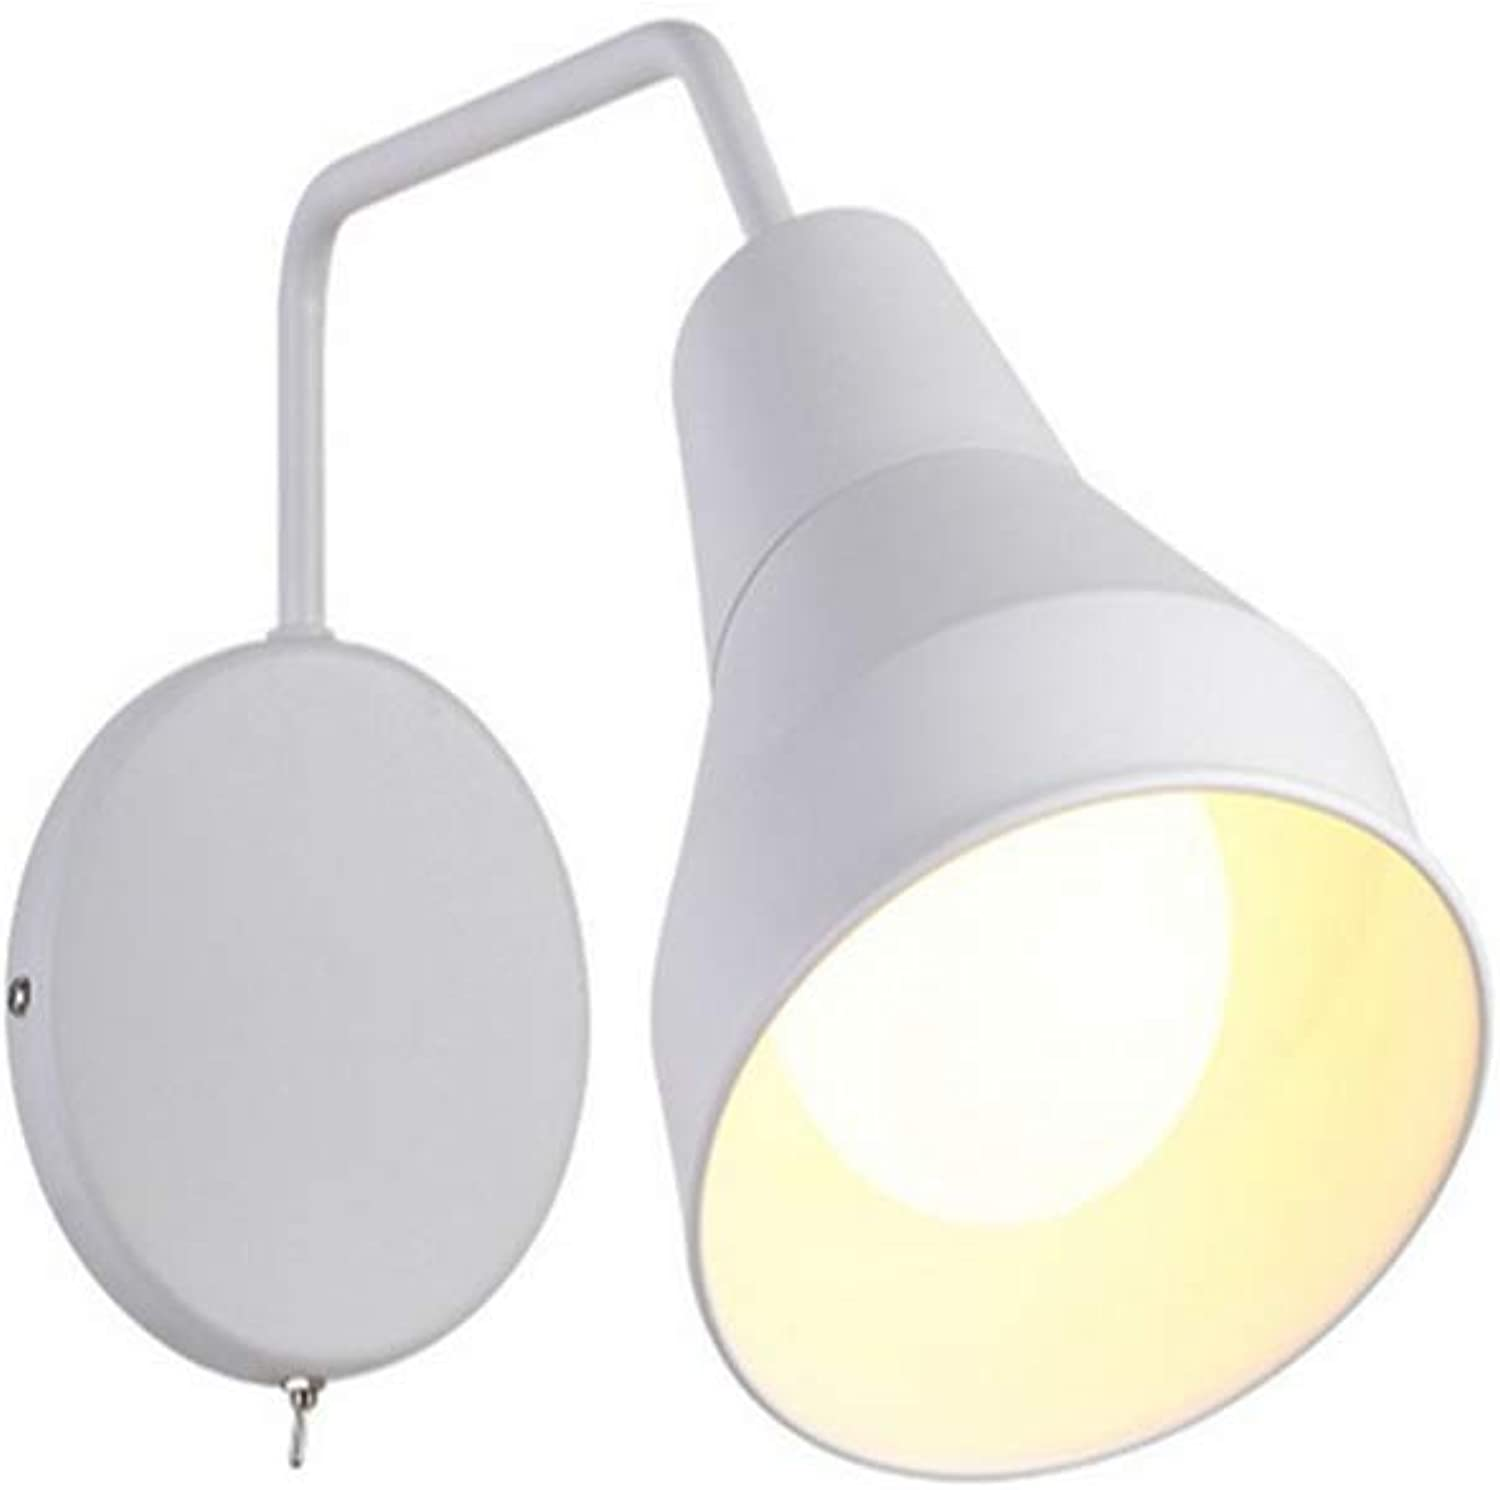 Lichtwall Sconce Wall Lights Nordic Wall Lamp Modern Simple Creative Bedroom Bedside Balcony Aisle Rotate The Wall Lights With Switch Small Wall Lights [Energy Class A++]